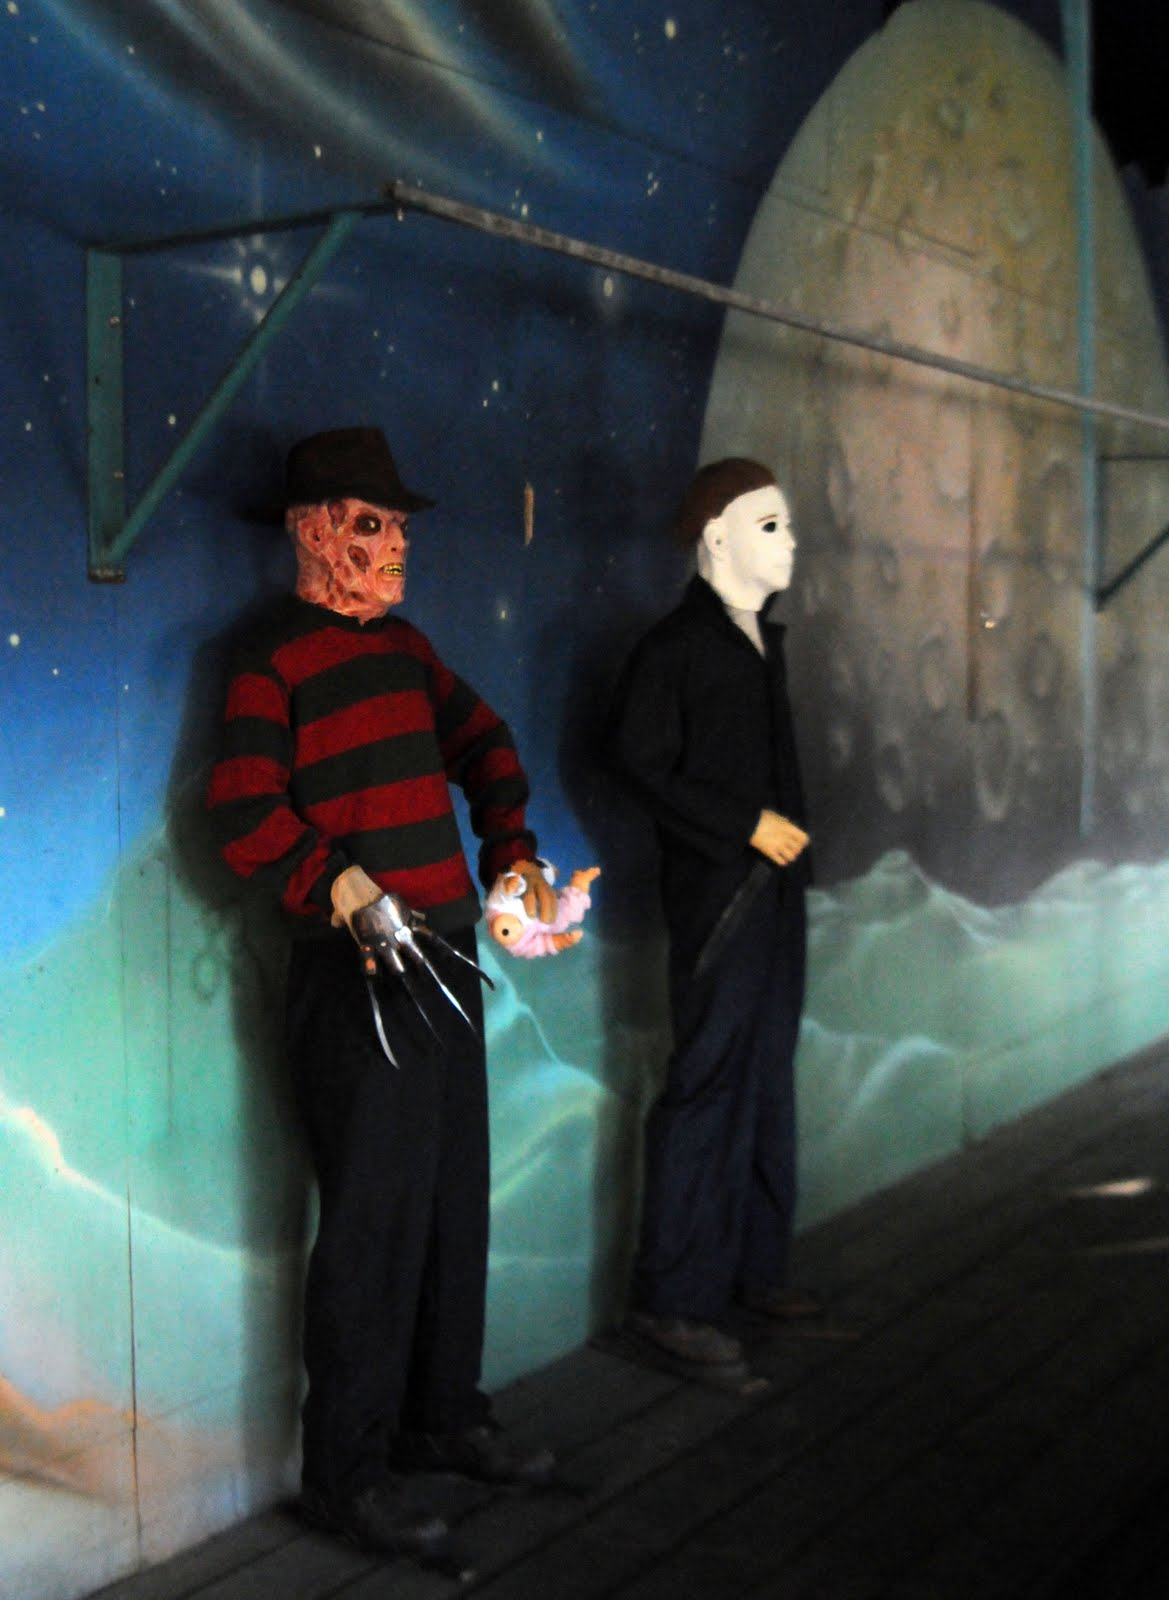 last fall when we visited lake winnepesaukah for their first ever halloween event the castle the parks quirky dark ride was being plussed for the holiday